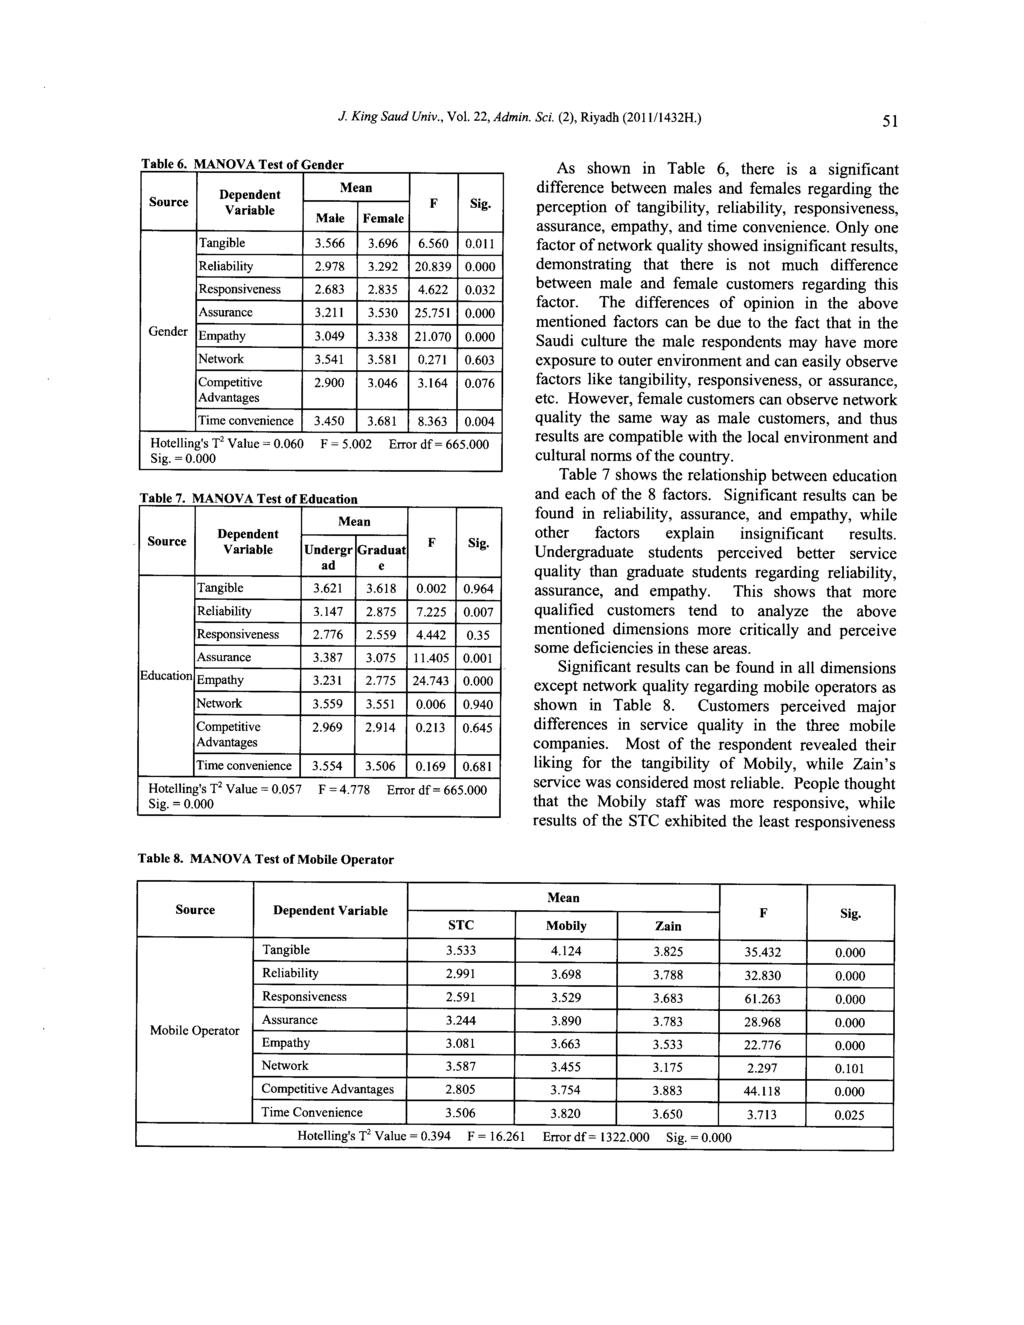 J. King Saud Univ., Vol. 22, Admin. Sci. (2), Riyadh (2011/1432H.) 51 Table 6 MANOV A Test of Gender Mean Dependent Source F Sig. Variable Male Female Tangible 3.566 3.696 6.560 0.011 Reliability 2.